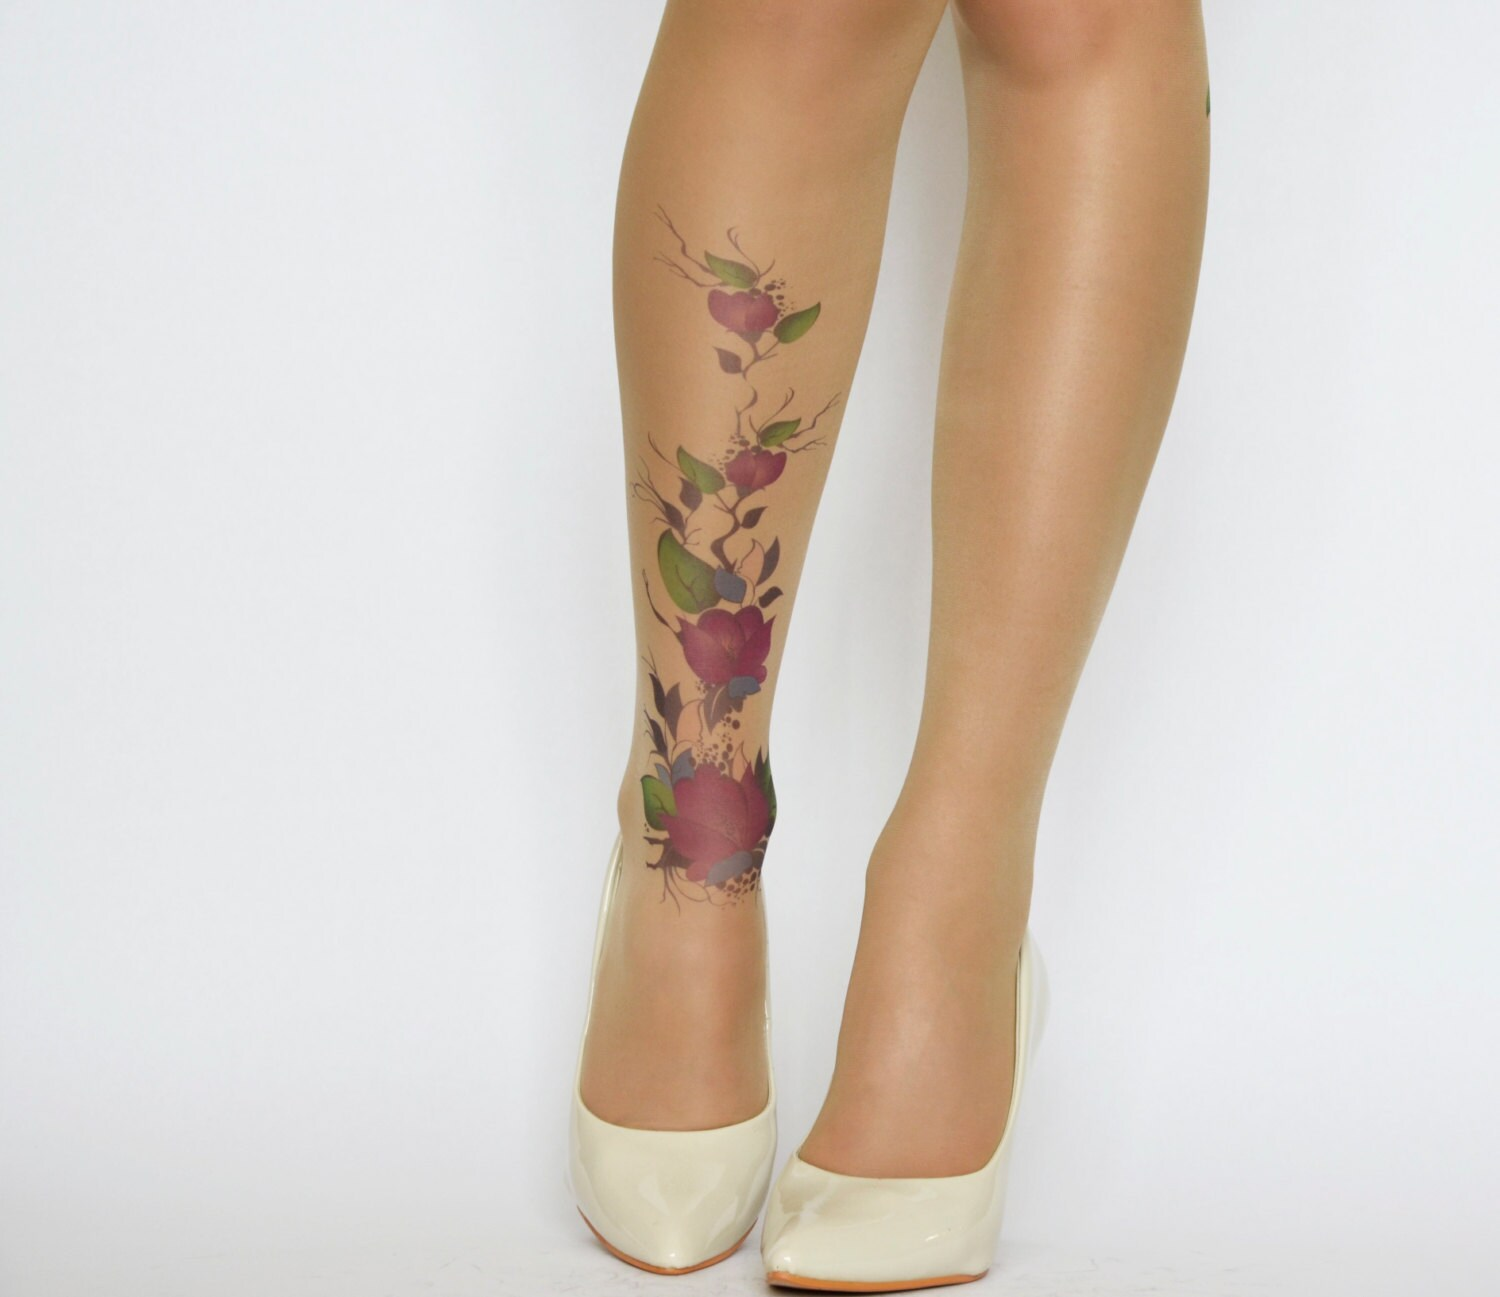 Girls with tattoos in pantyhose